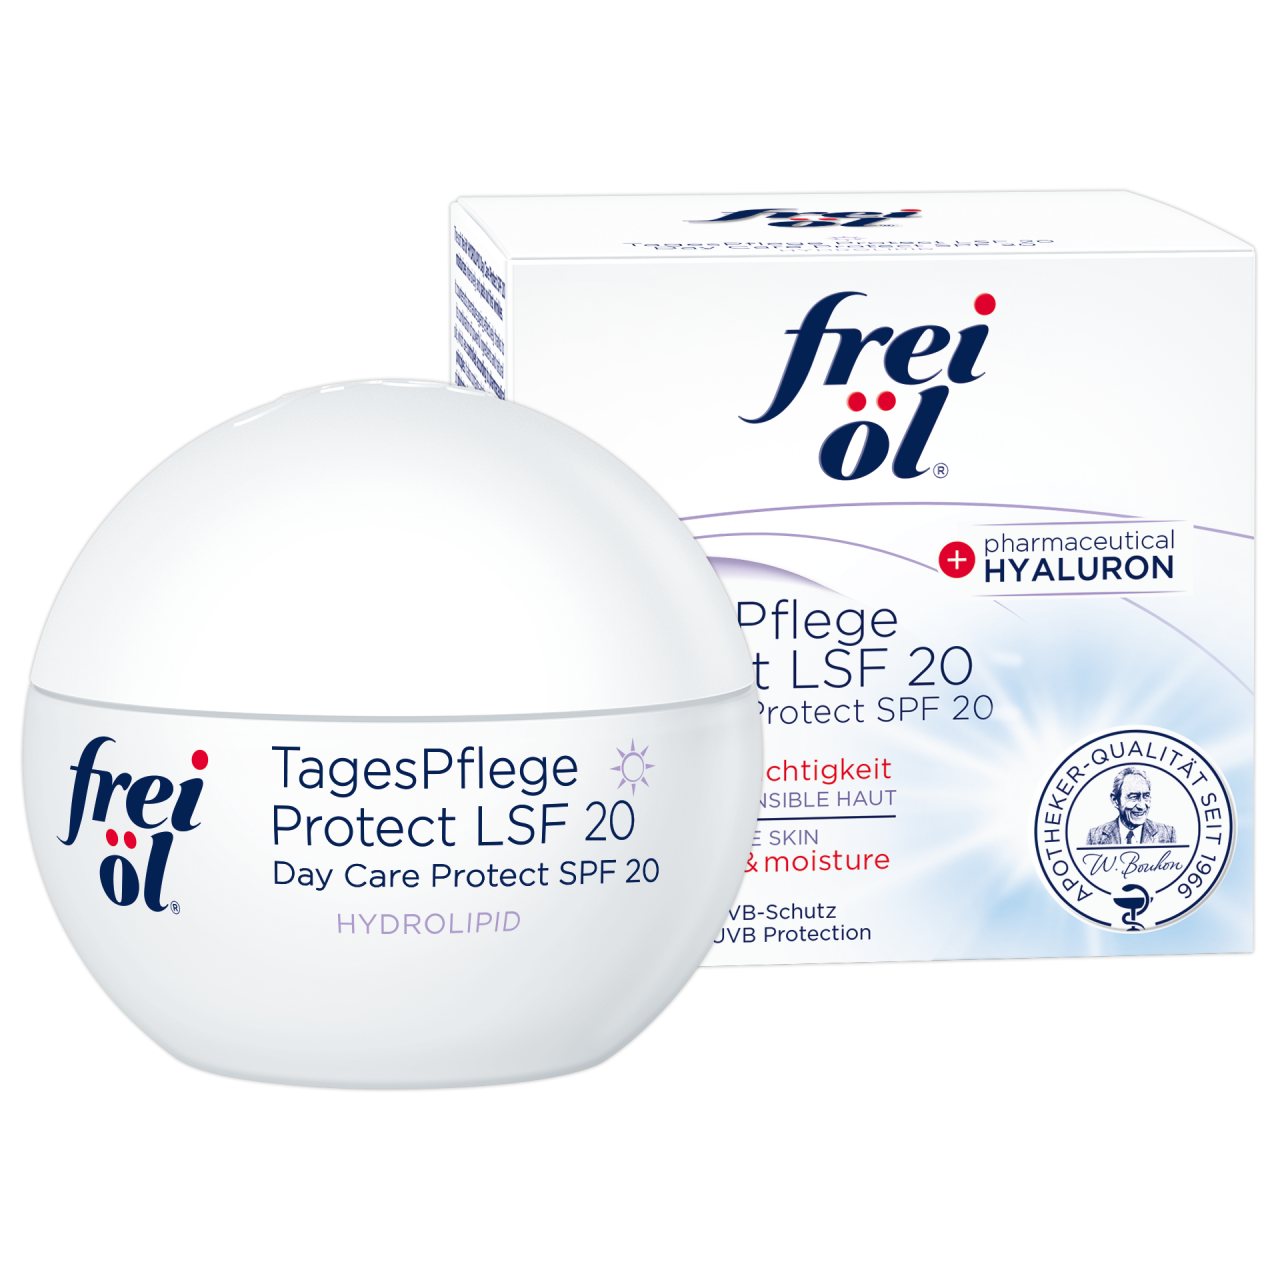 HYDROLIPID Day Care Protect SPF 20